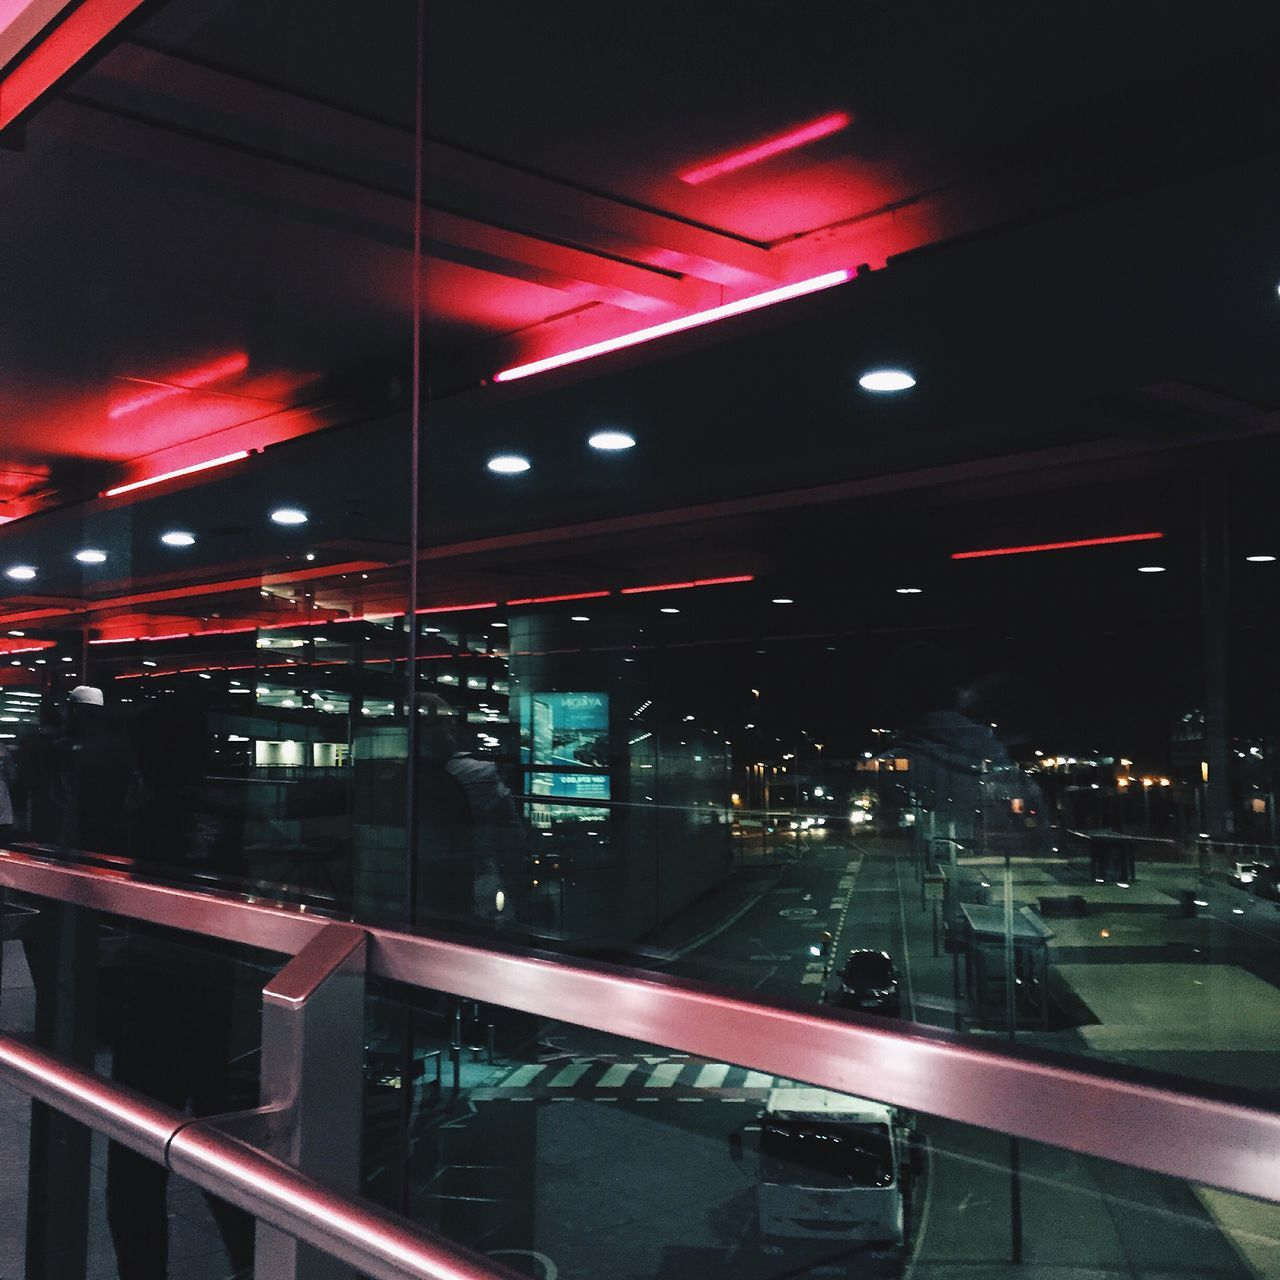 Airport Architecture Built Structure Heathrow Airport Illuminated Indoors  Night No People Red Technology